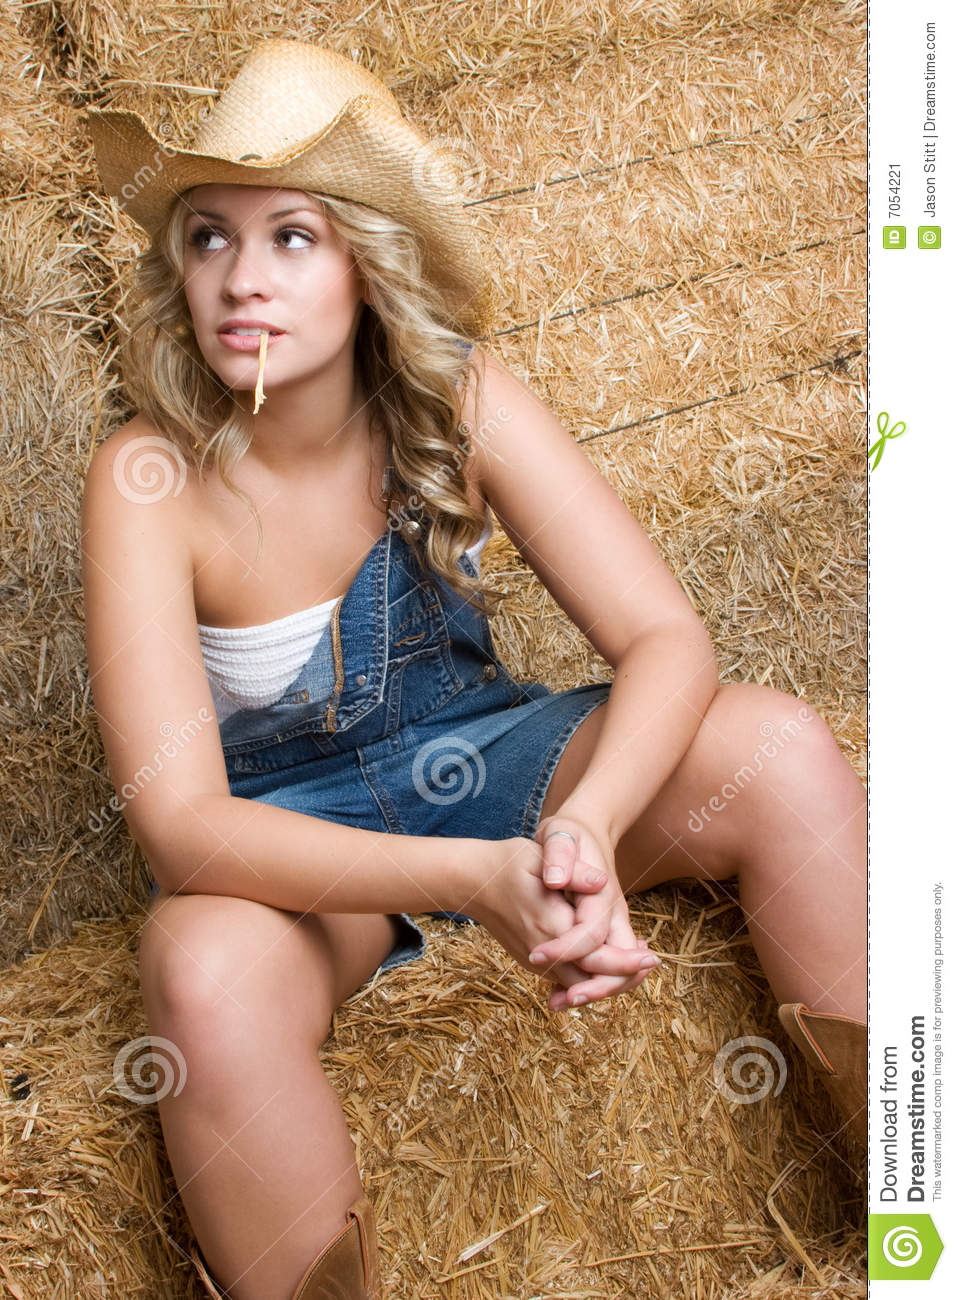 Sexy Country Women 68